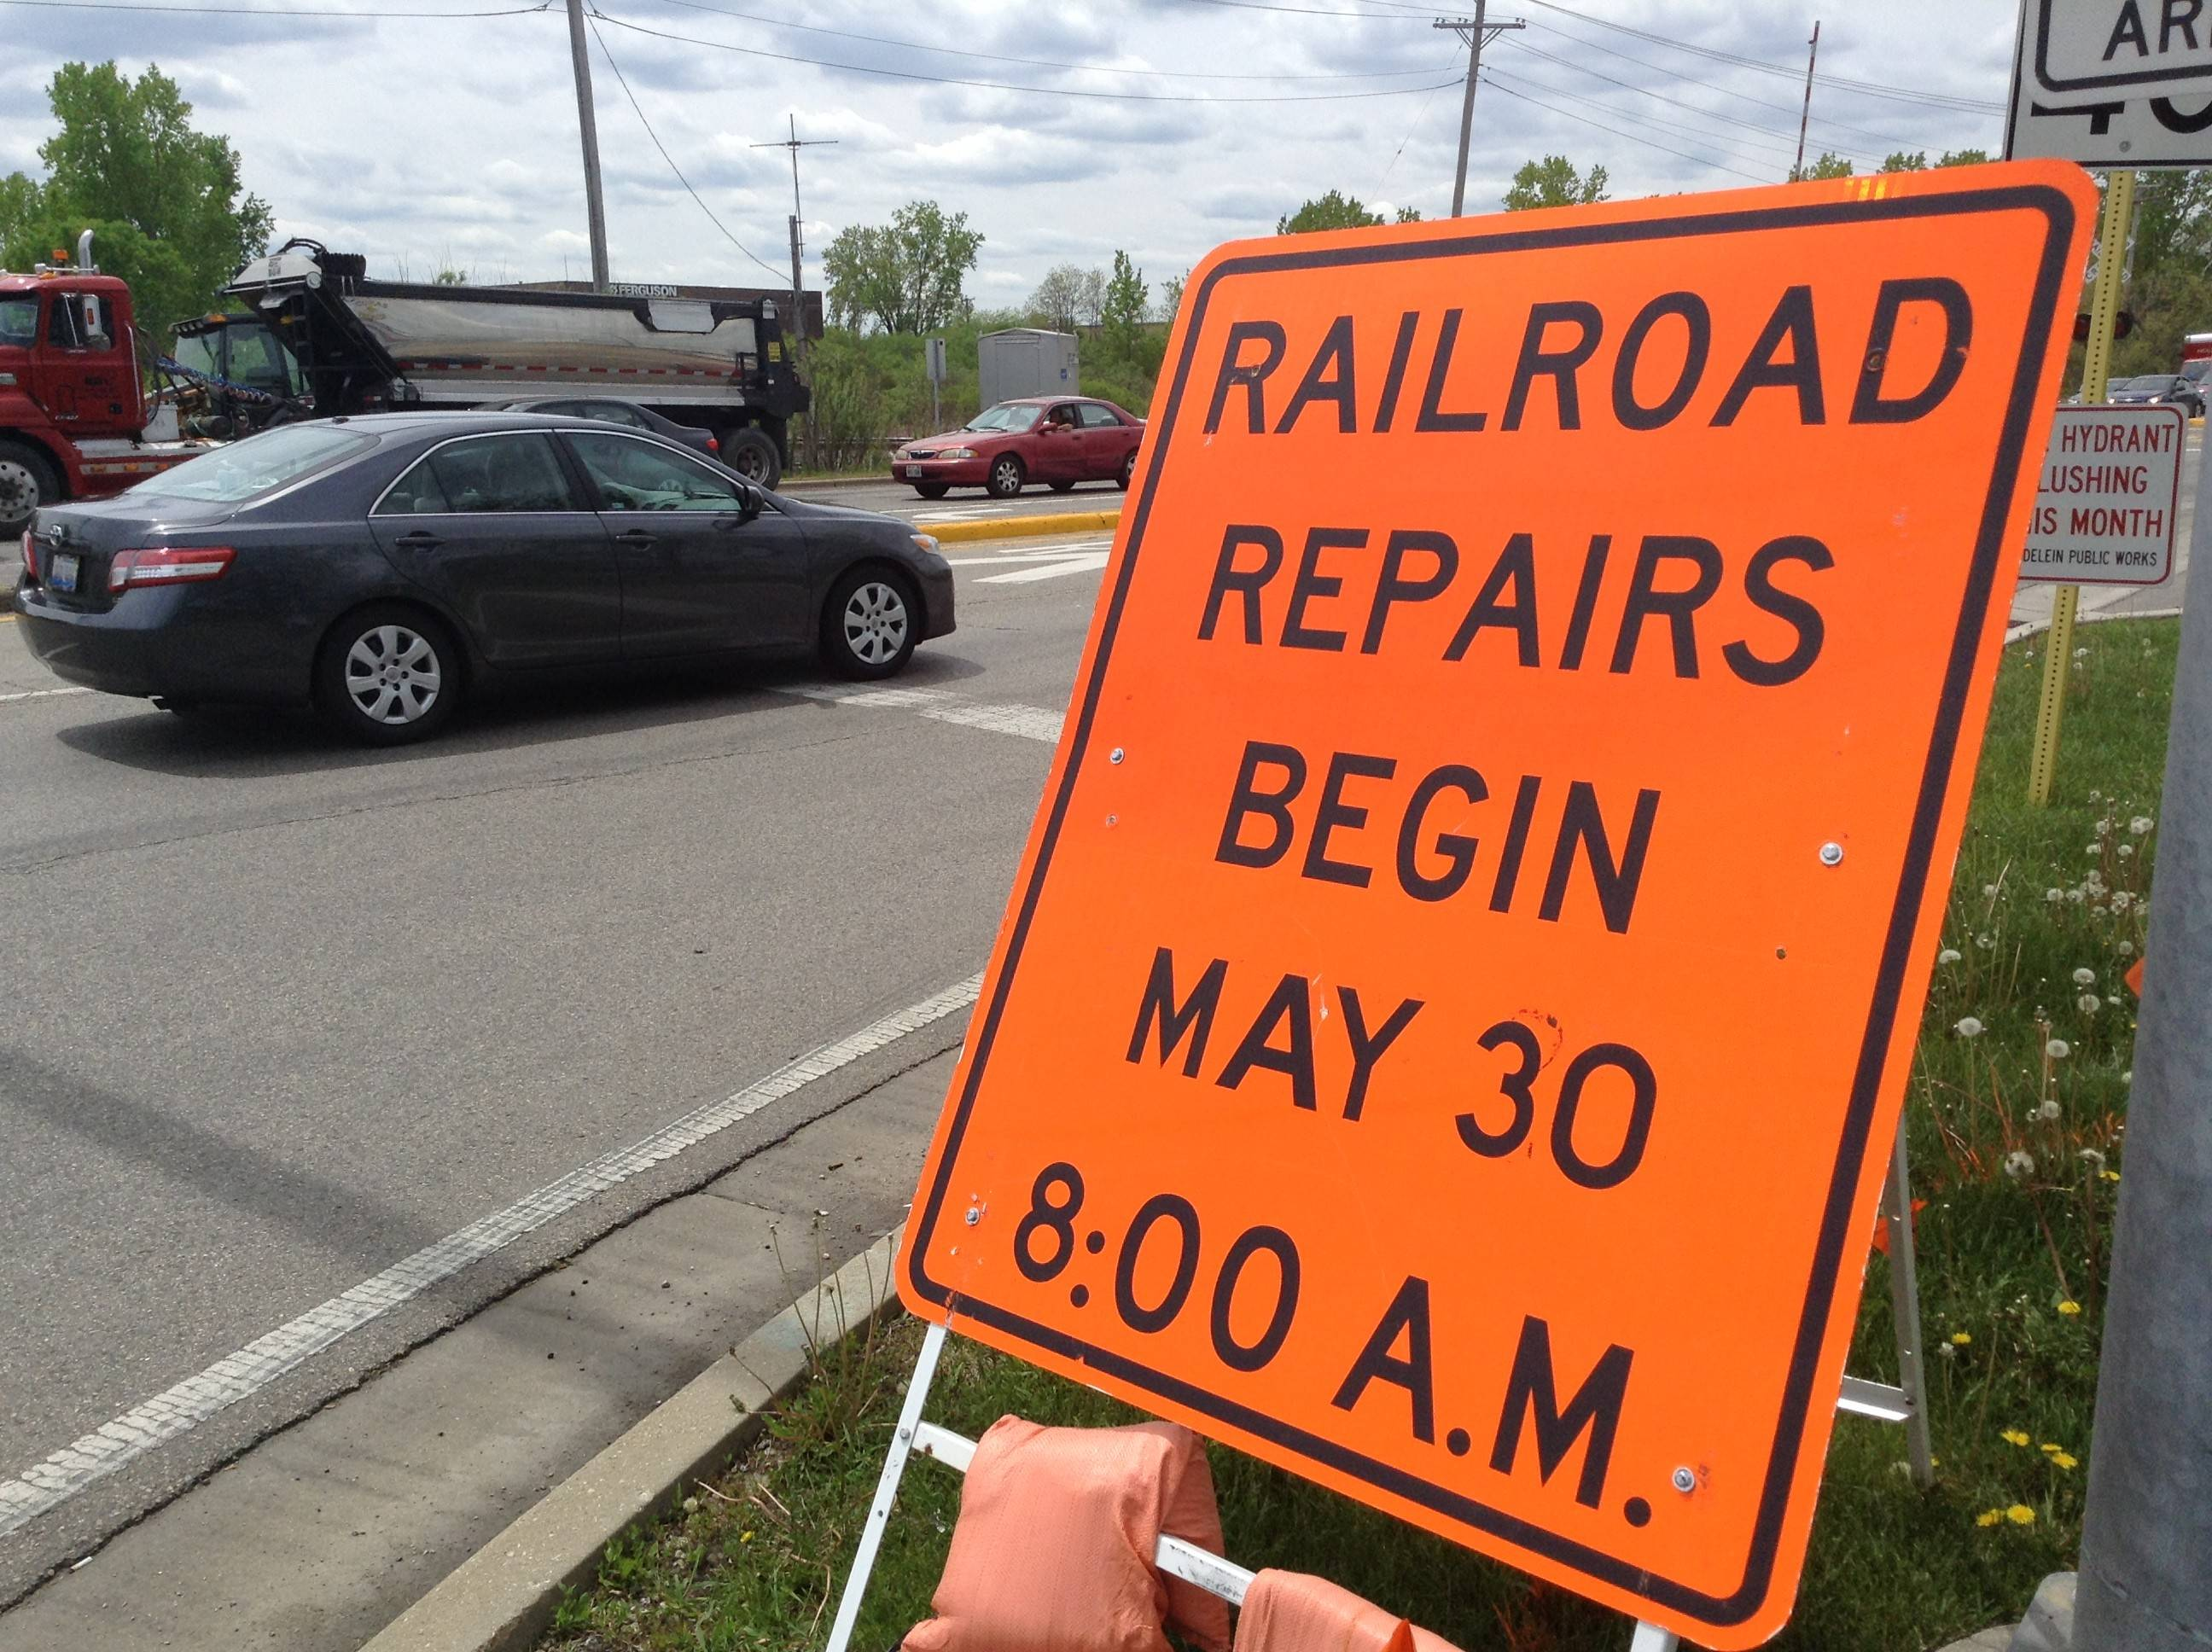 Two road closures planned for Mundelein area